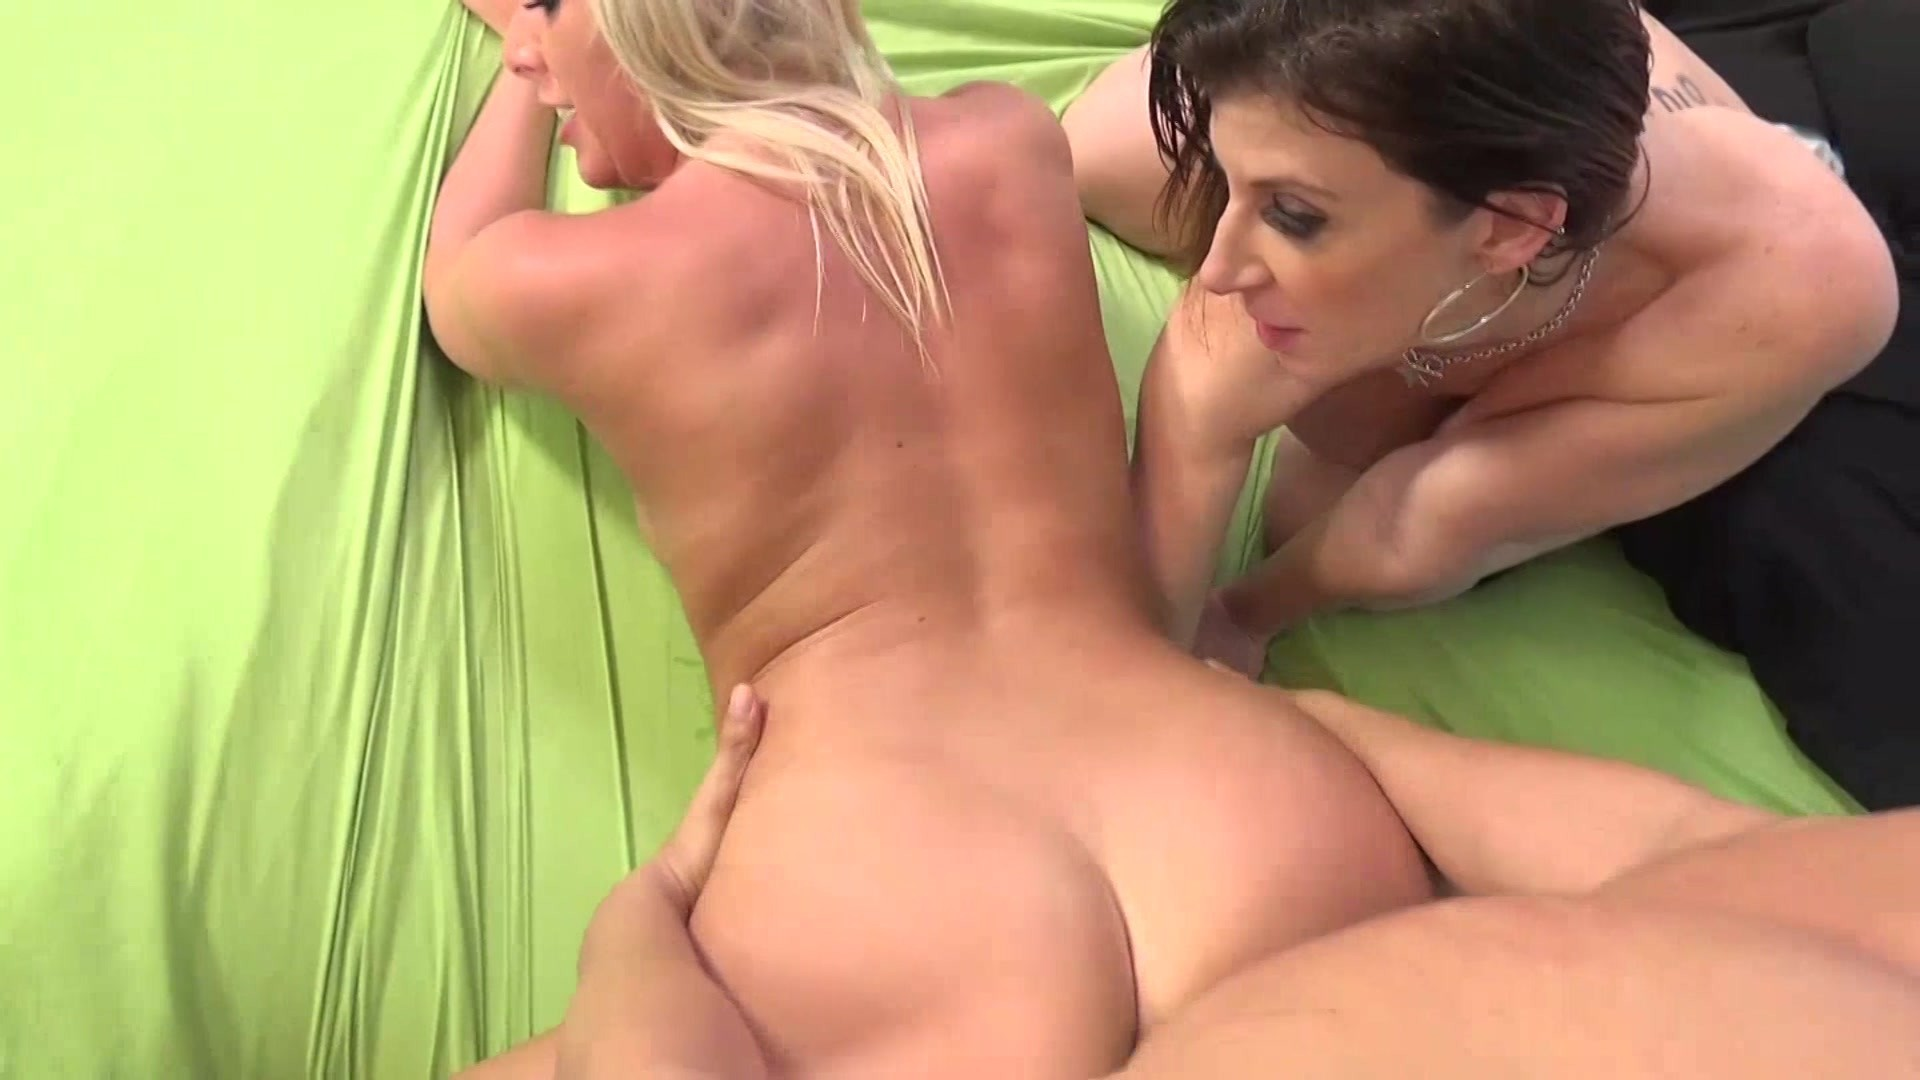 Very Beautiful And Heavy Fat Naked Virgin Girls Busty Blonde Giving A Handjob